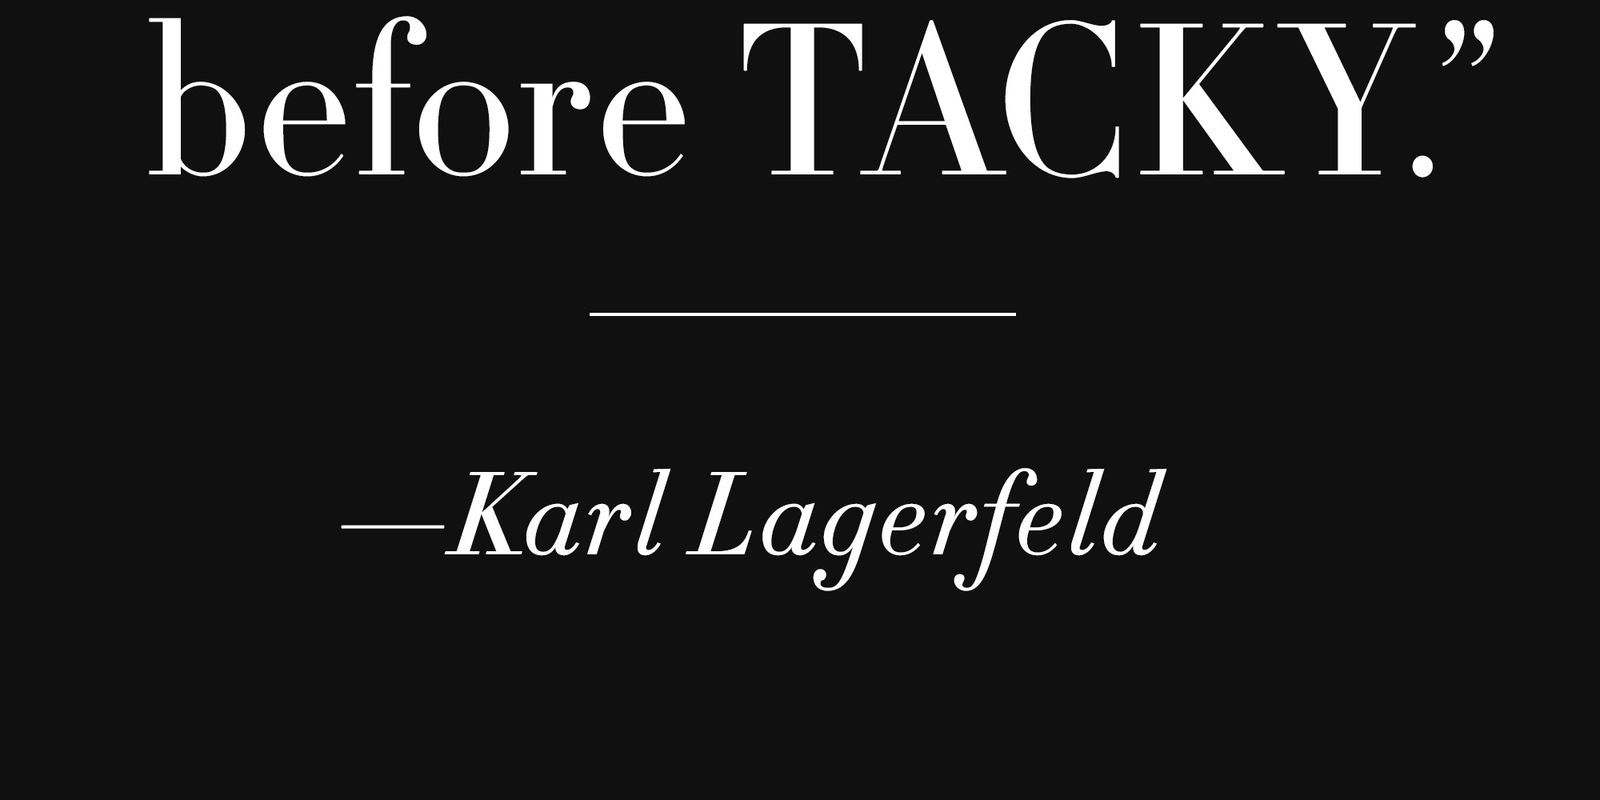 famous fashion quotes from karl lagerfeld coco chanel diana